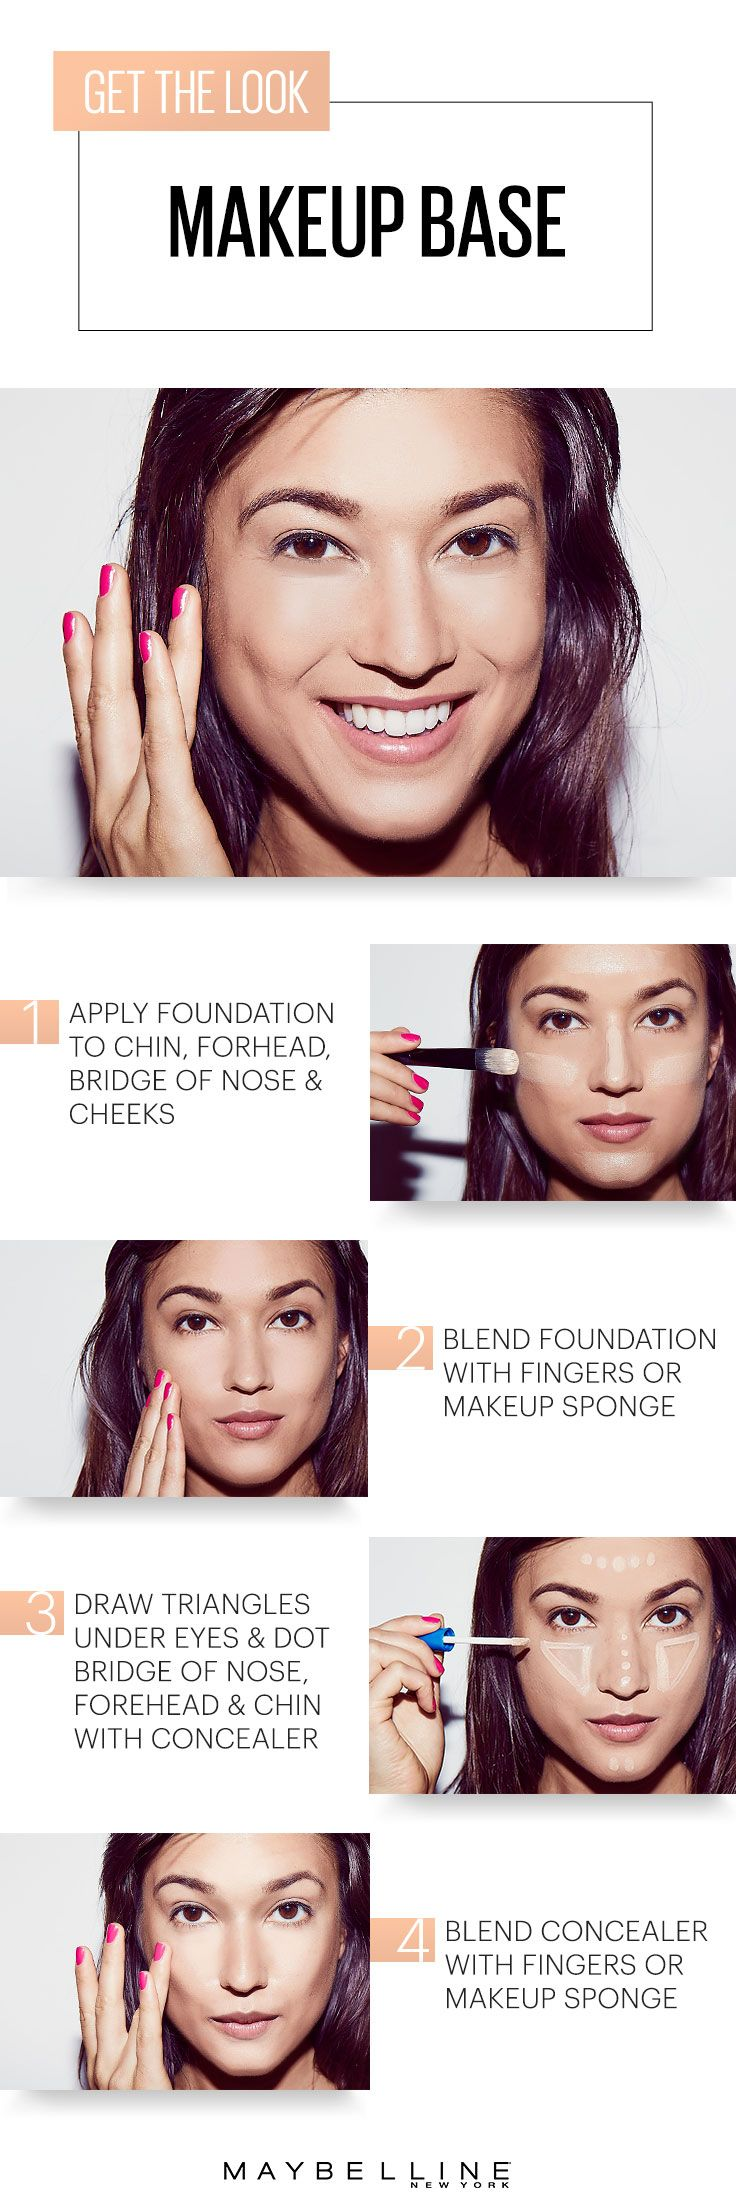 Spring makeup tip! Apply foundation first, then concealer. It makes your skin look 100% more flawless for the warmer months! Follow this simple Maybelline how-to beauty guide with our Better Skin combo and you'll be applying foundation and concealer like a pro in no time for a easy natural makeup look this spring season.